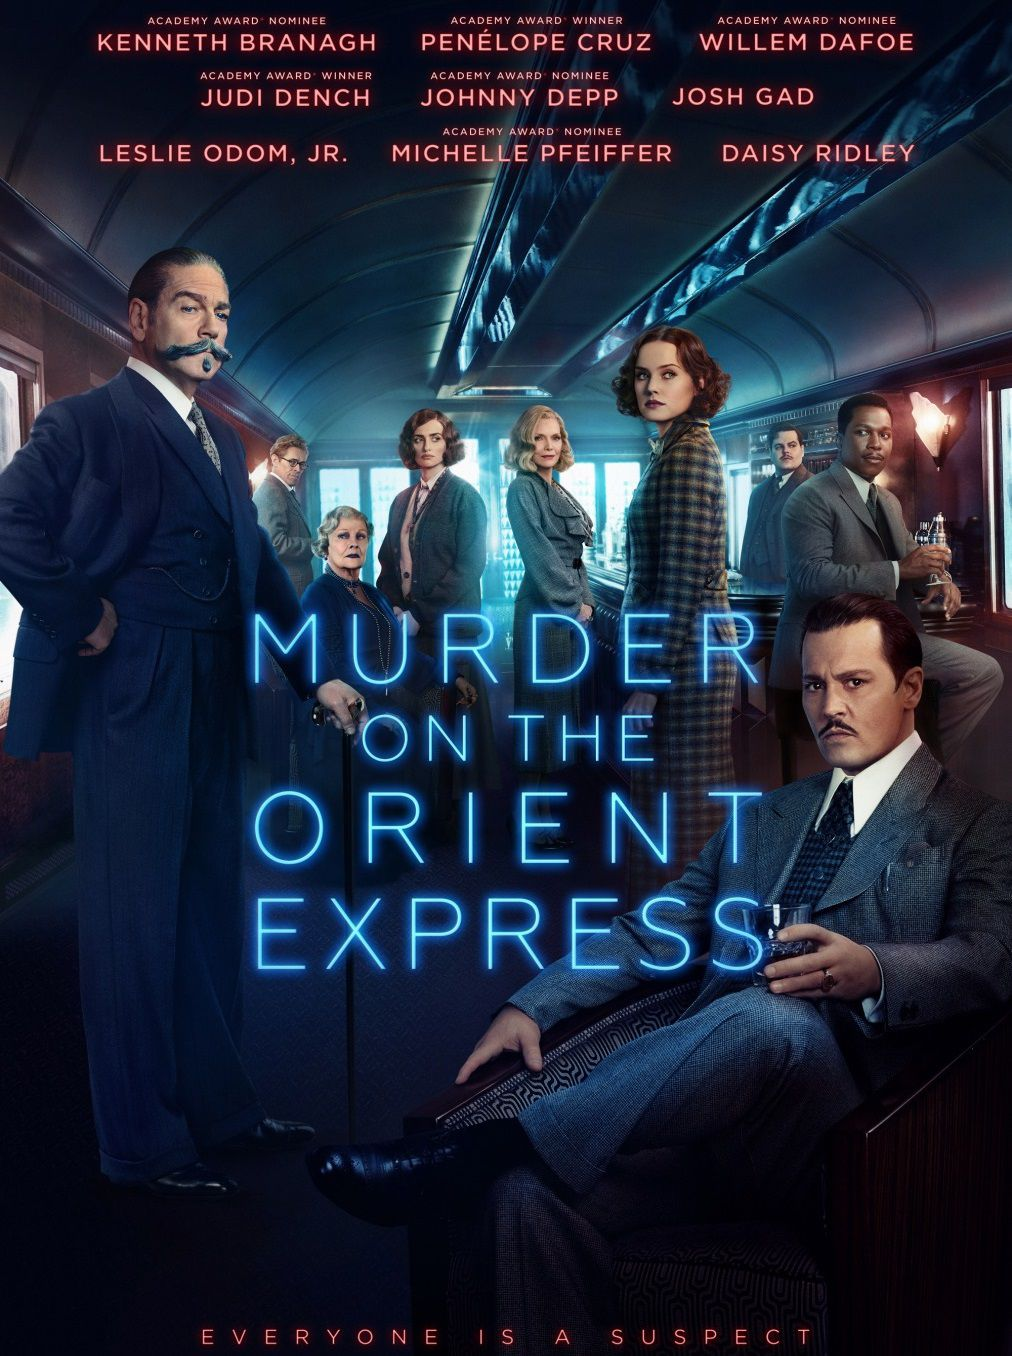 Assassinio sull'Orient Express - Murder on the Orient Express (Film Remake 2017) - poster